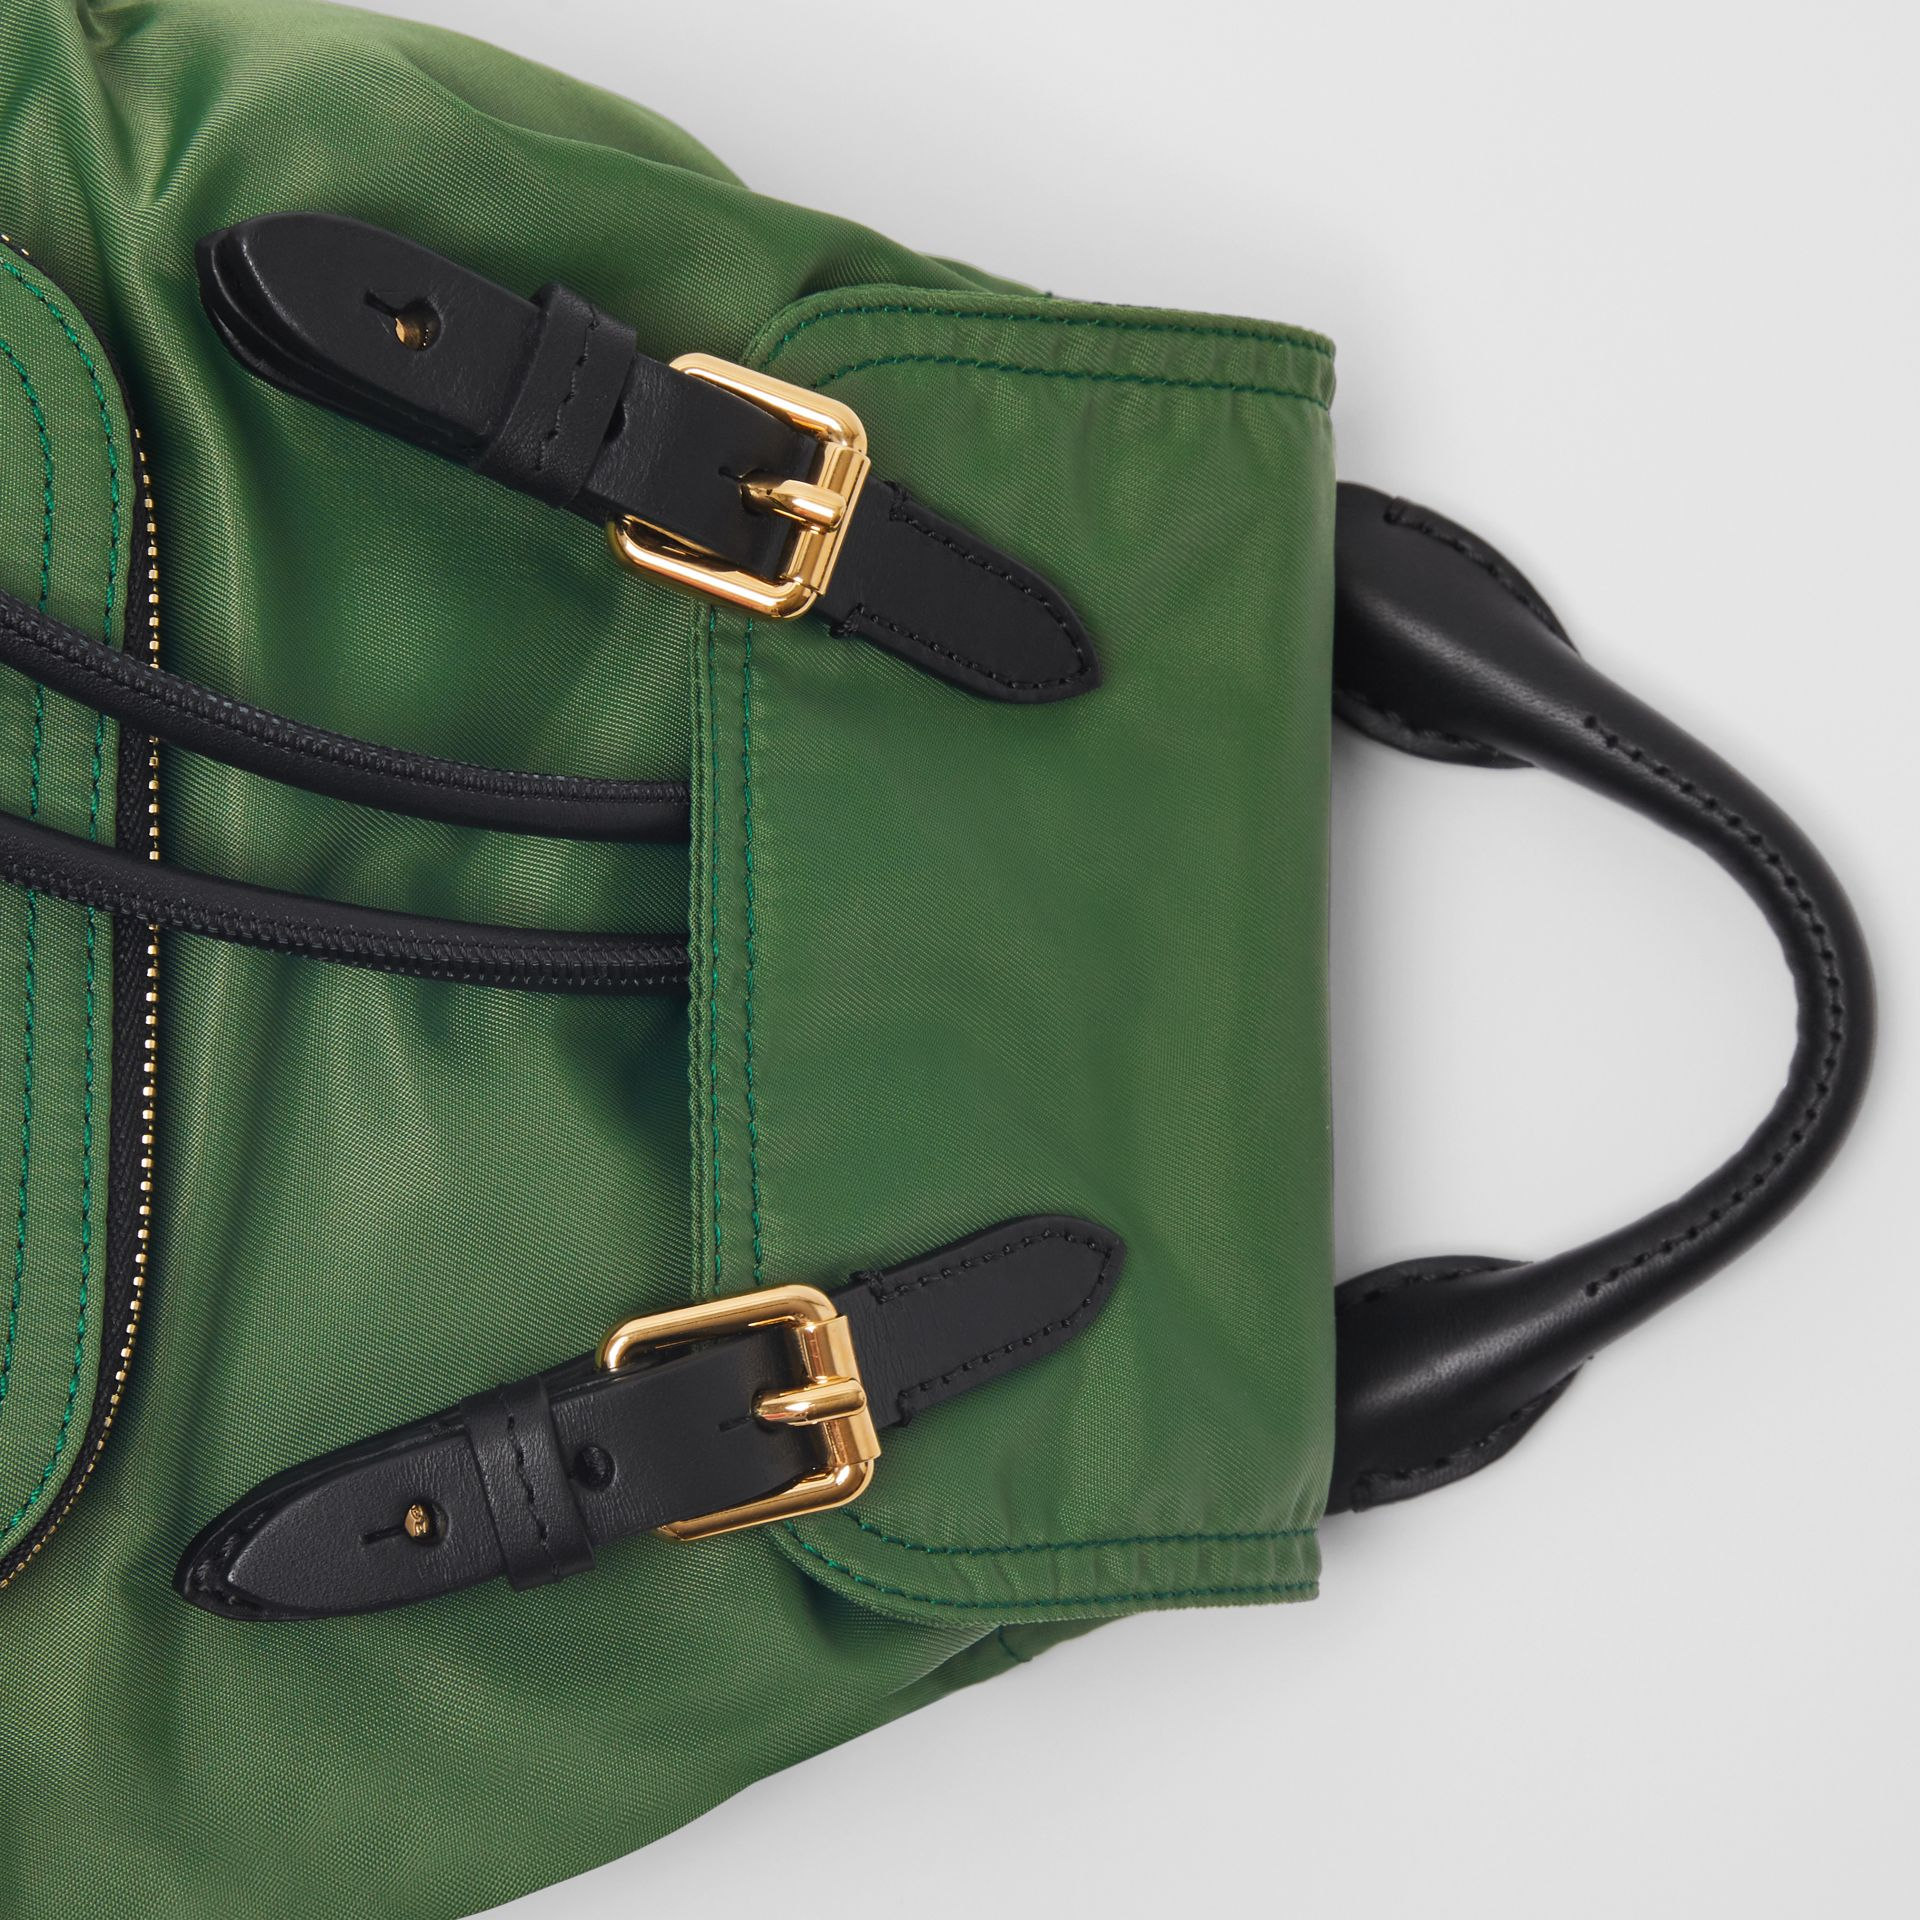 The Small Crossbody Rucksack in Nylon in Racing Green - Women | Burberry Australia - gallery image 1